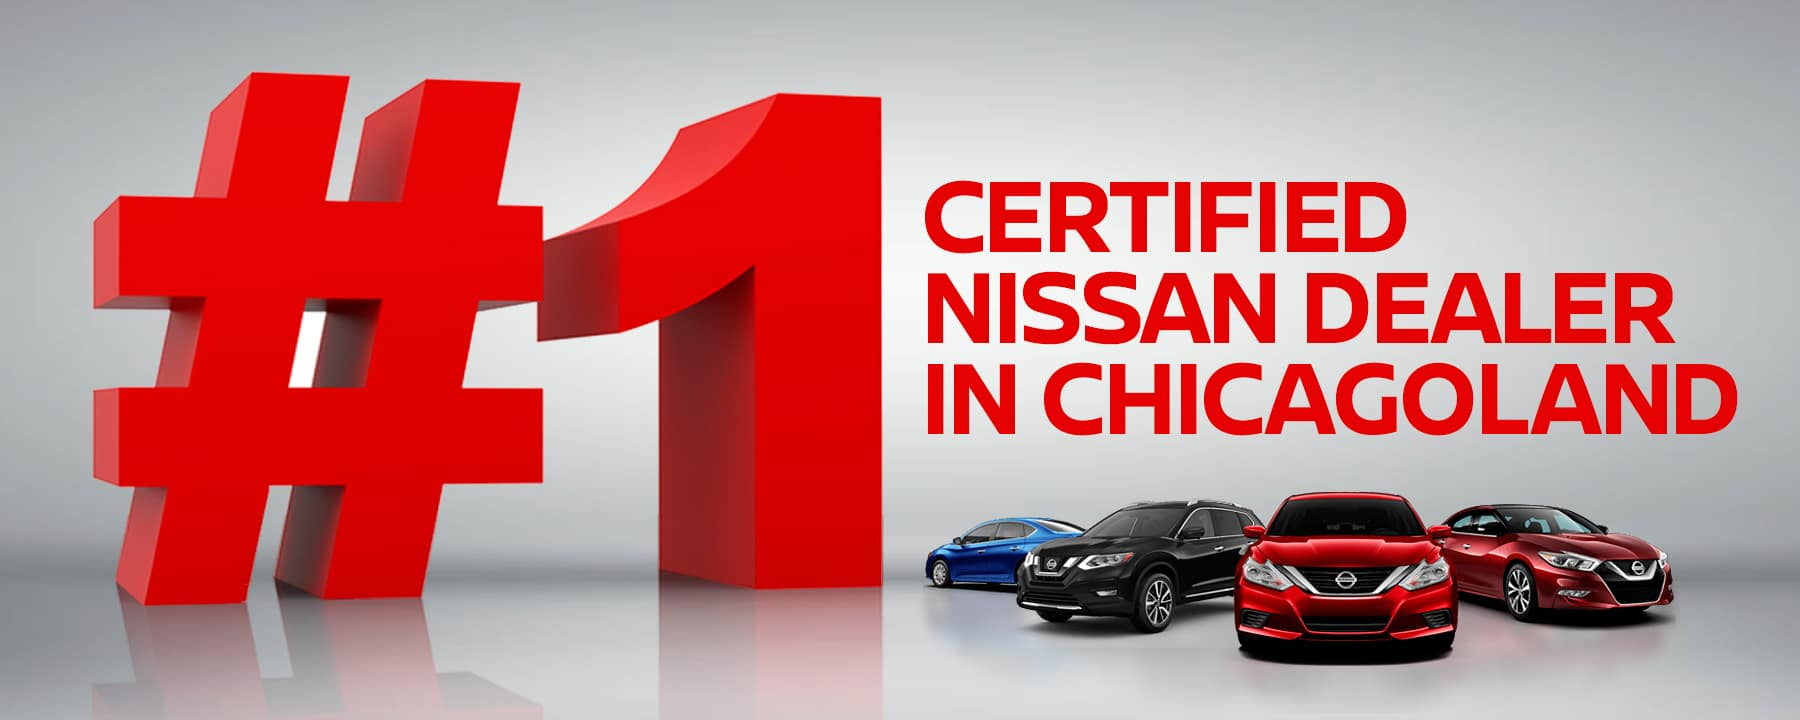 Star Nissan is the #1 Certified Nissan Dealer in Chicagoland!